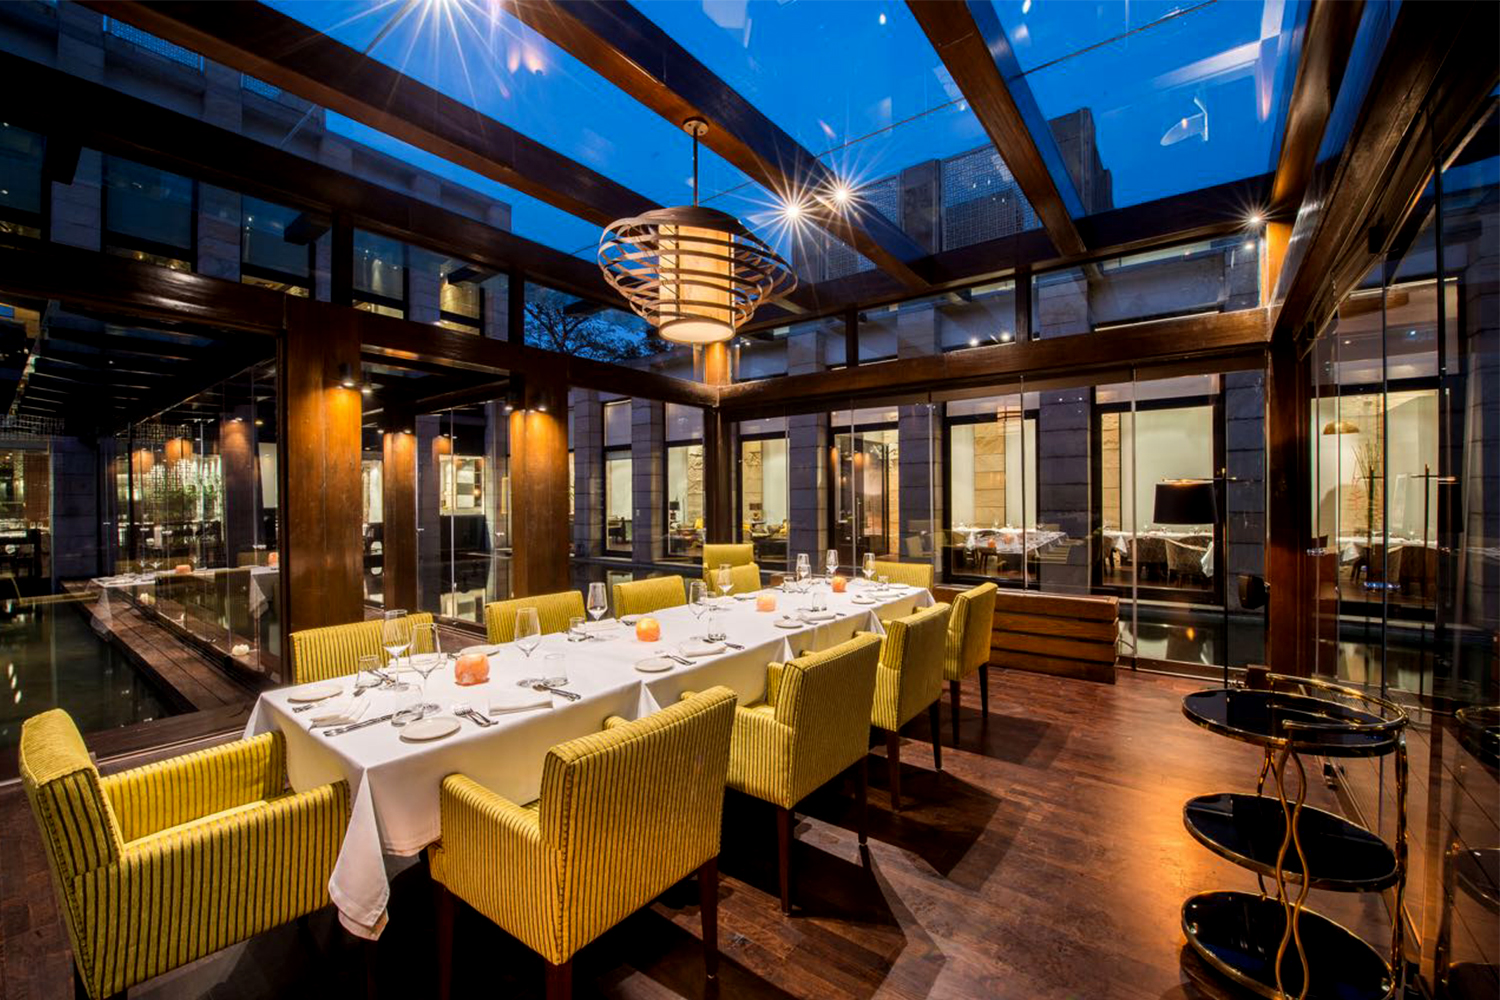 Indian Accent restaurant in New York, New Delhi and London